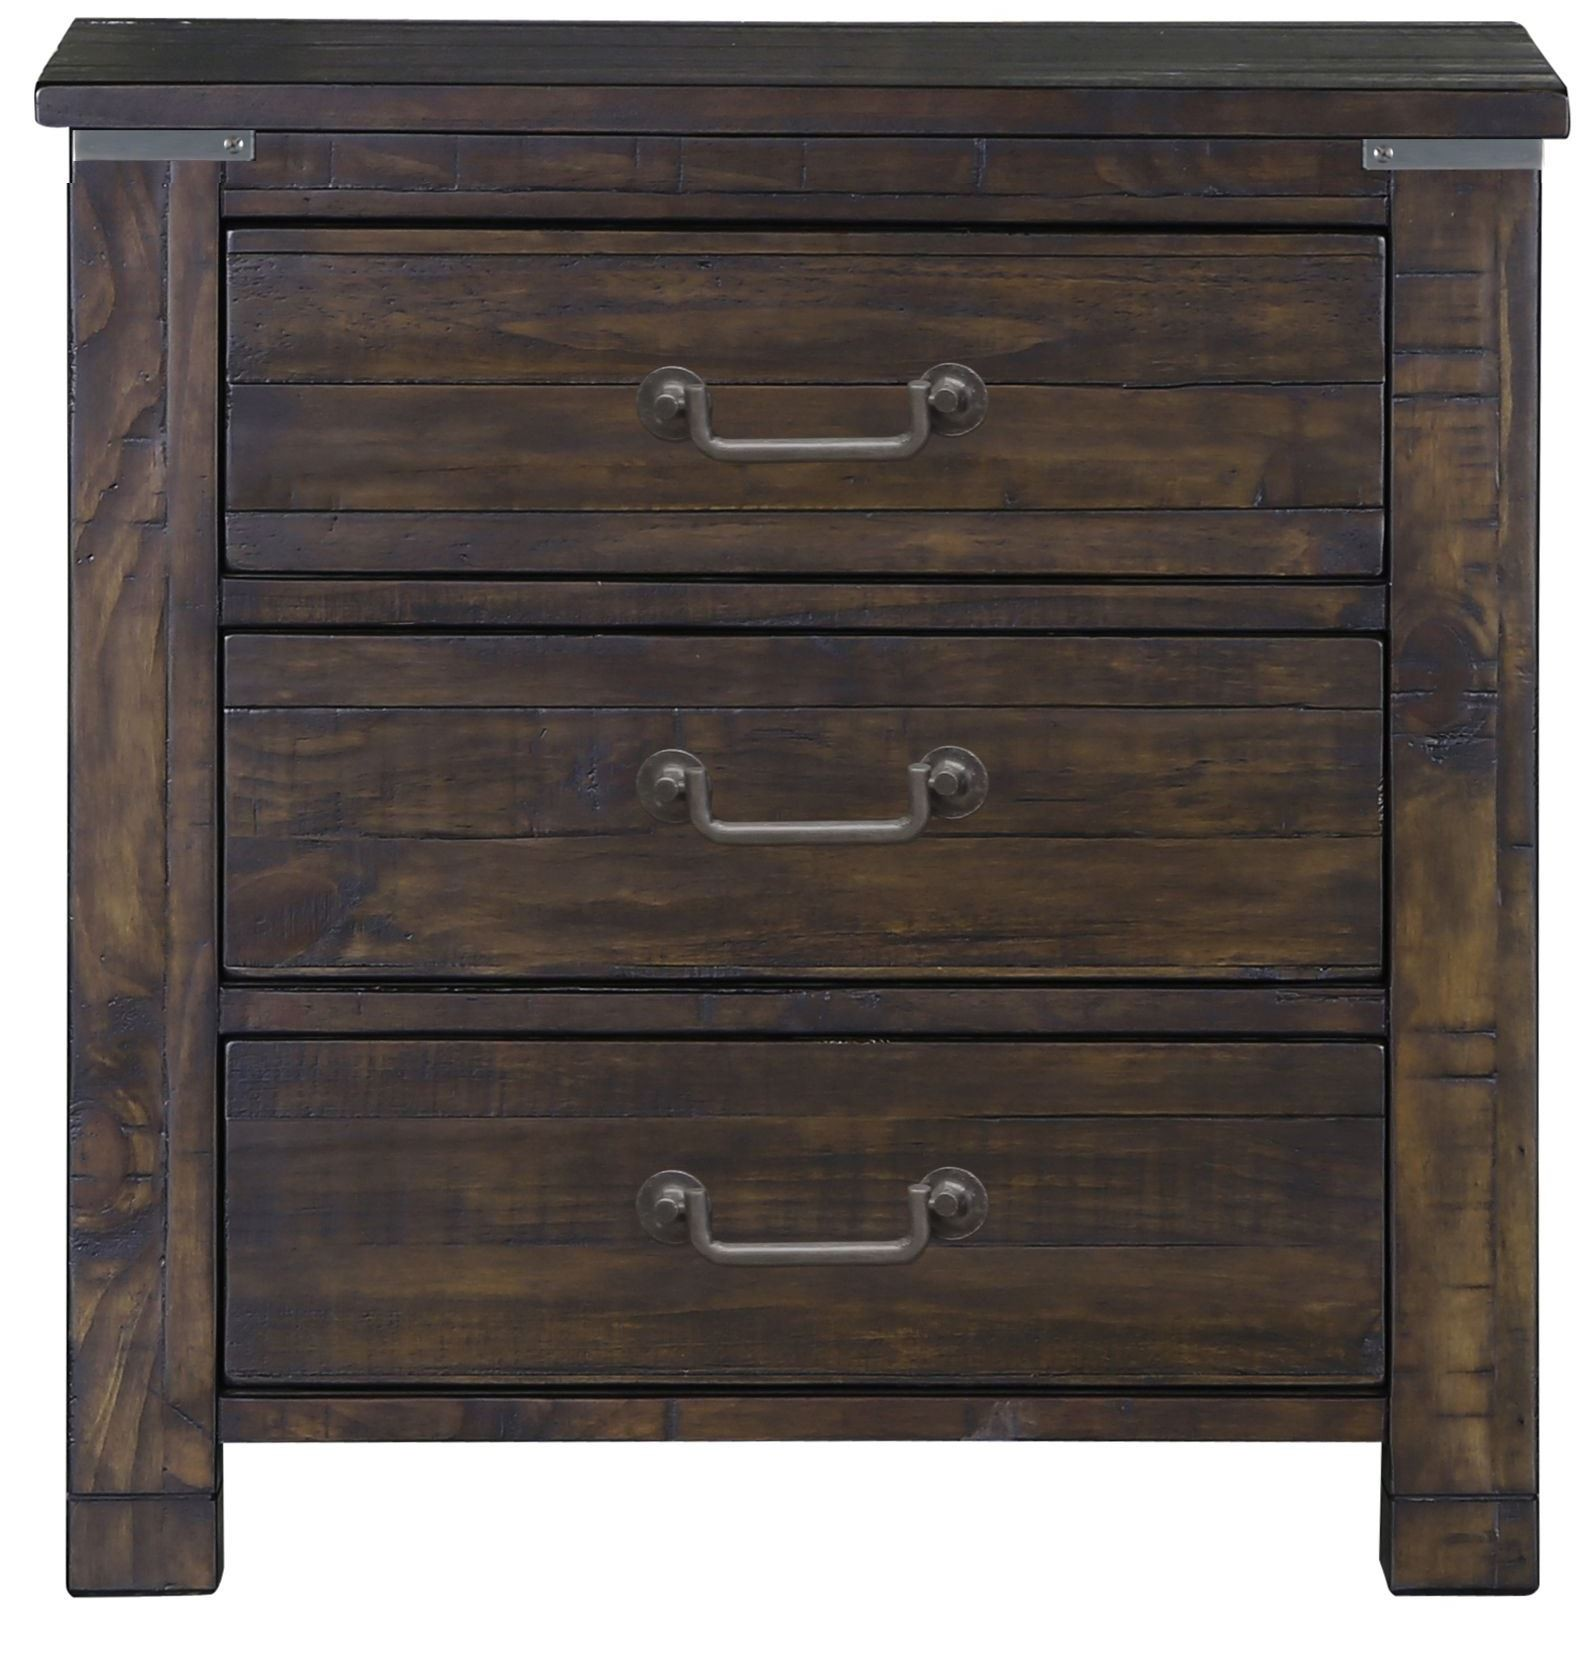 Pine Hill Rustic Pine Wood Drawer Nightstand From Magnussen Home B3561 01 Coleman Furniture